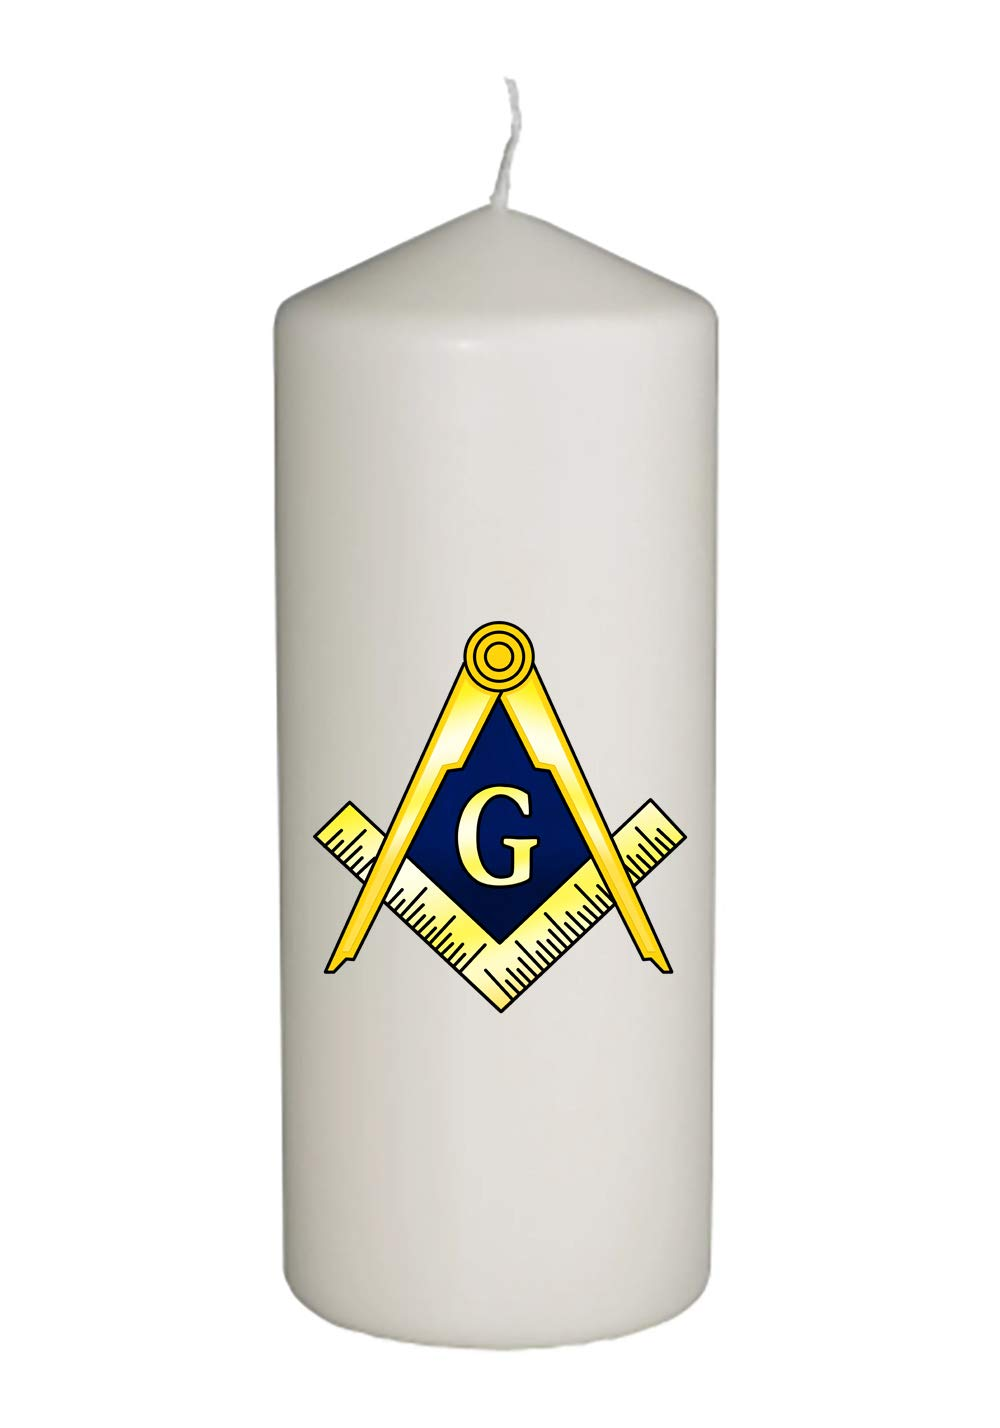 Hat Shark Mason Masons Masonic Live Better Logo Symbols Thick White in Full Color Unity Candle - Wedding, Baptism, Funeral, Special Event Decoration (6 inches Tall)